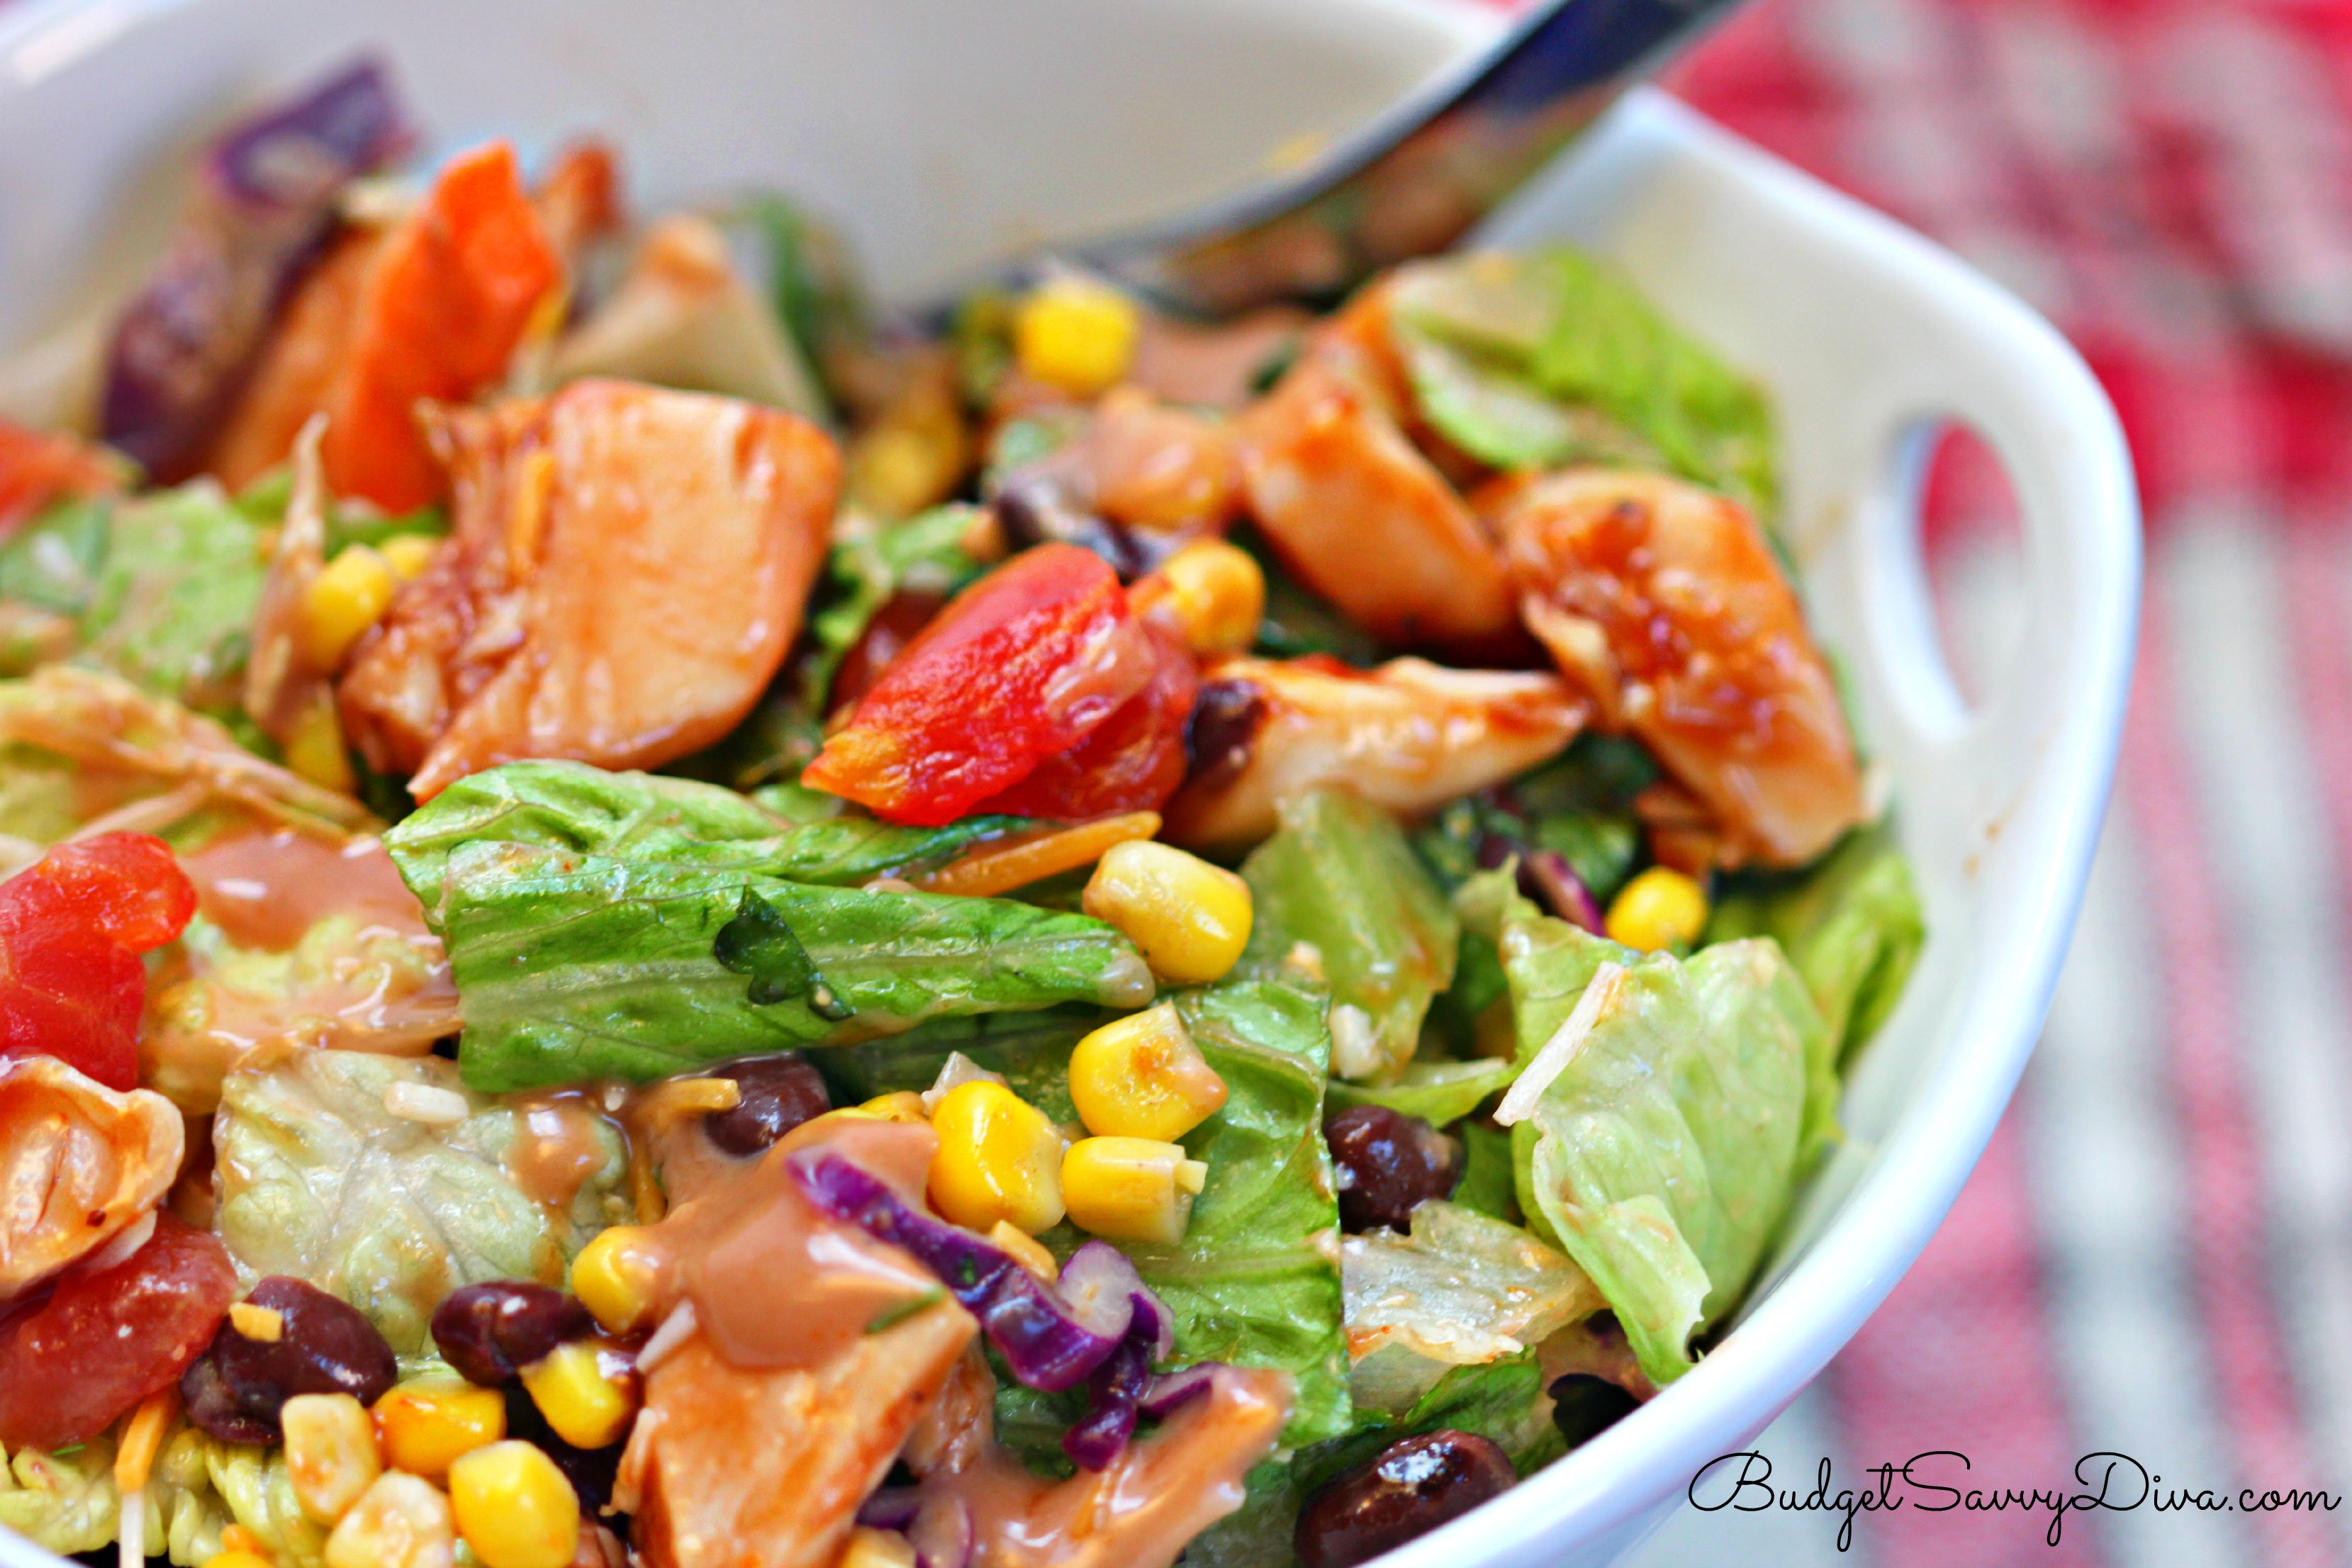 bbq salad chicken recipe salads recipes amazing live budgetsavvydiva personally favorite type